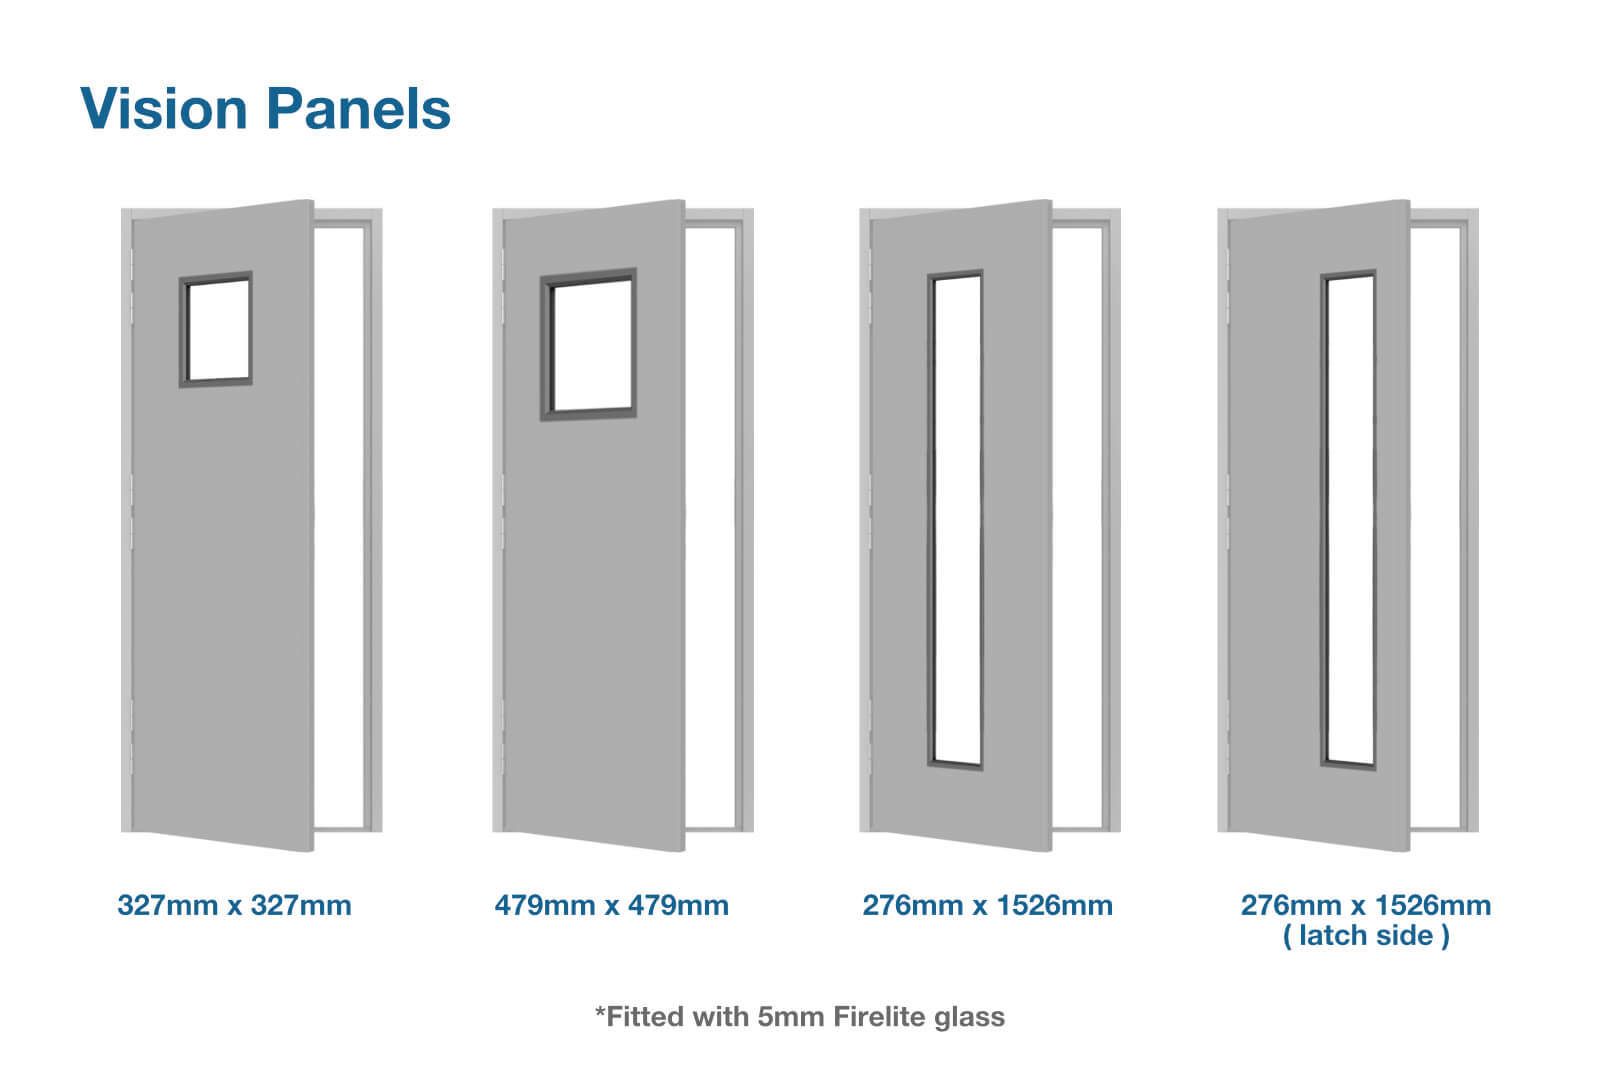 Vision panel sizes for custom made fire rated steel doors